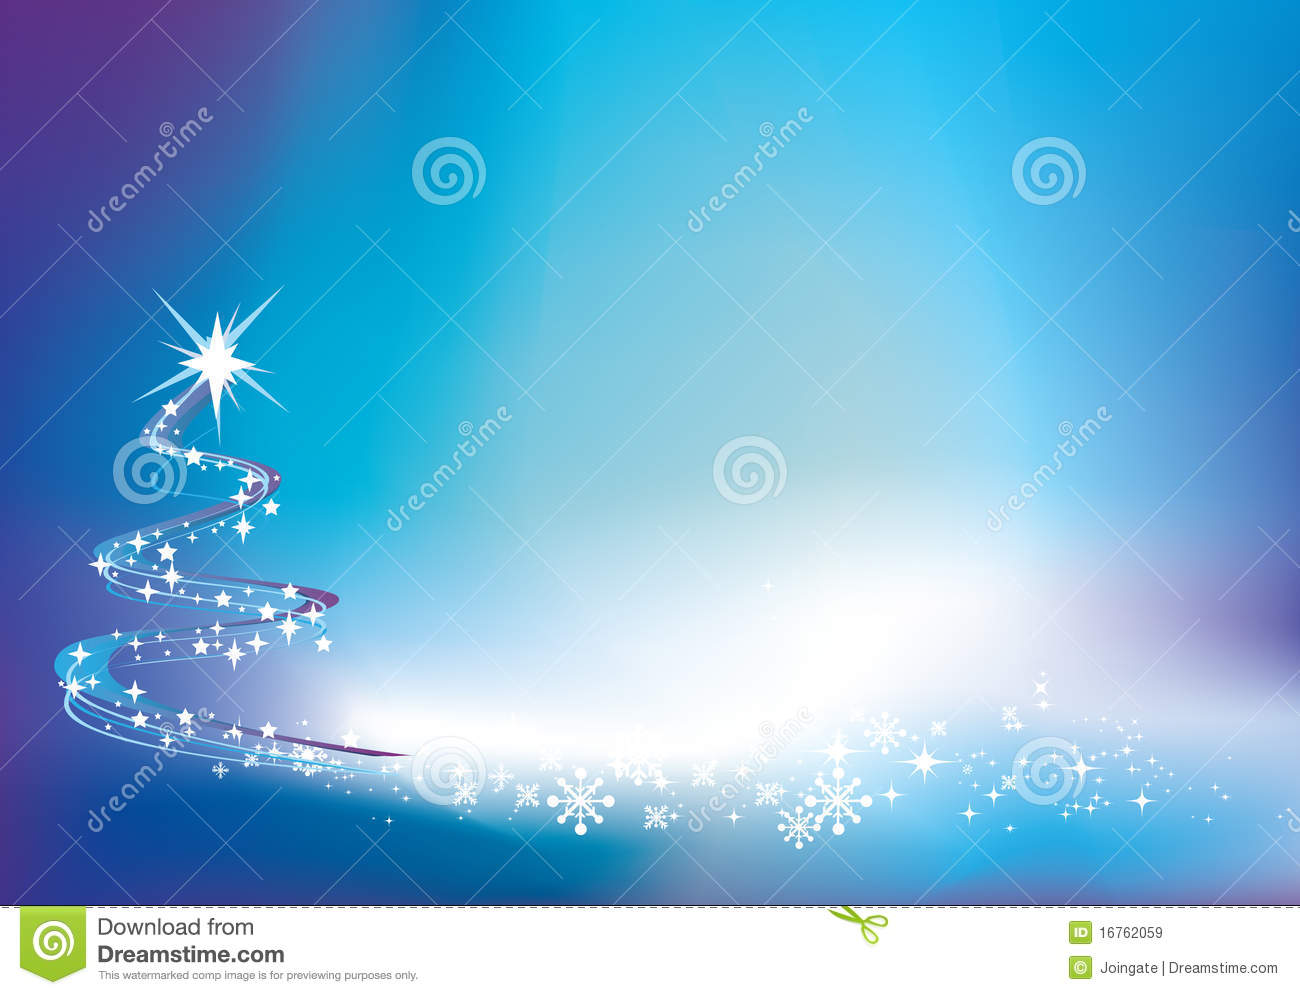 Blue Christmas Twinkle Background Royalty Free Stock